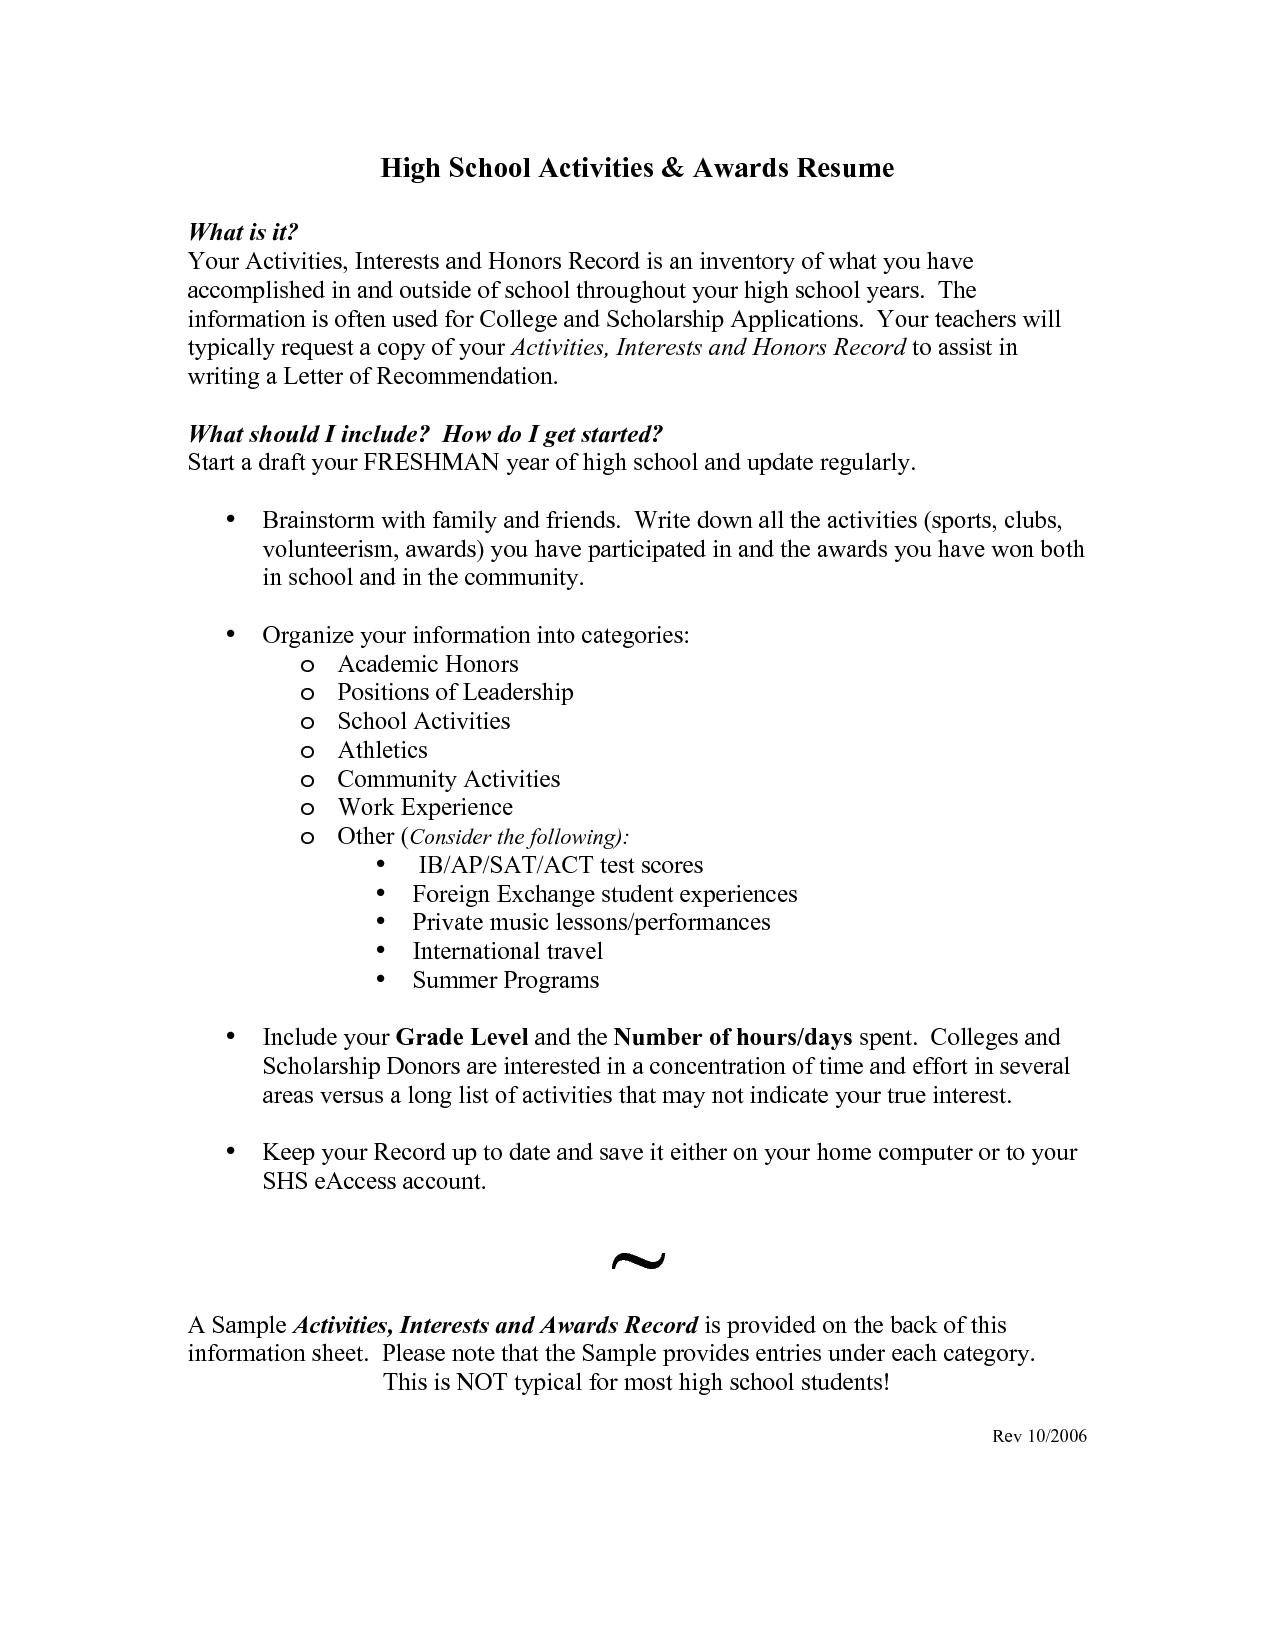 Example Resume For High School Student For College Applications. ...  Example Resumes For College Students